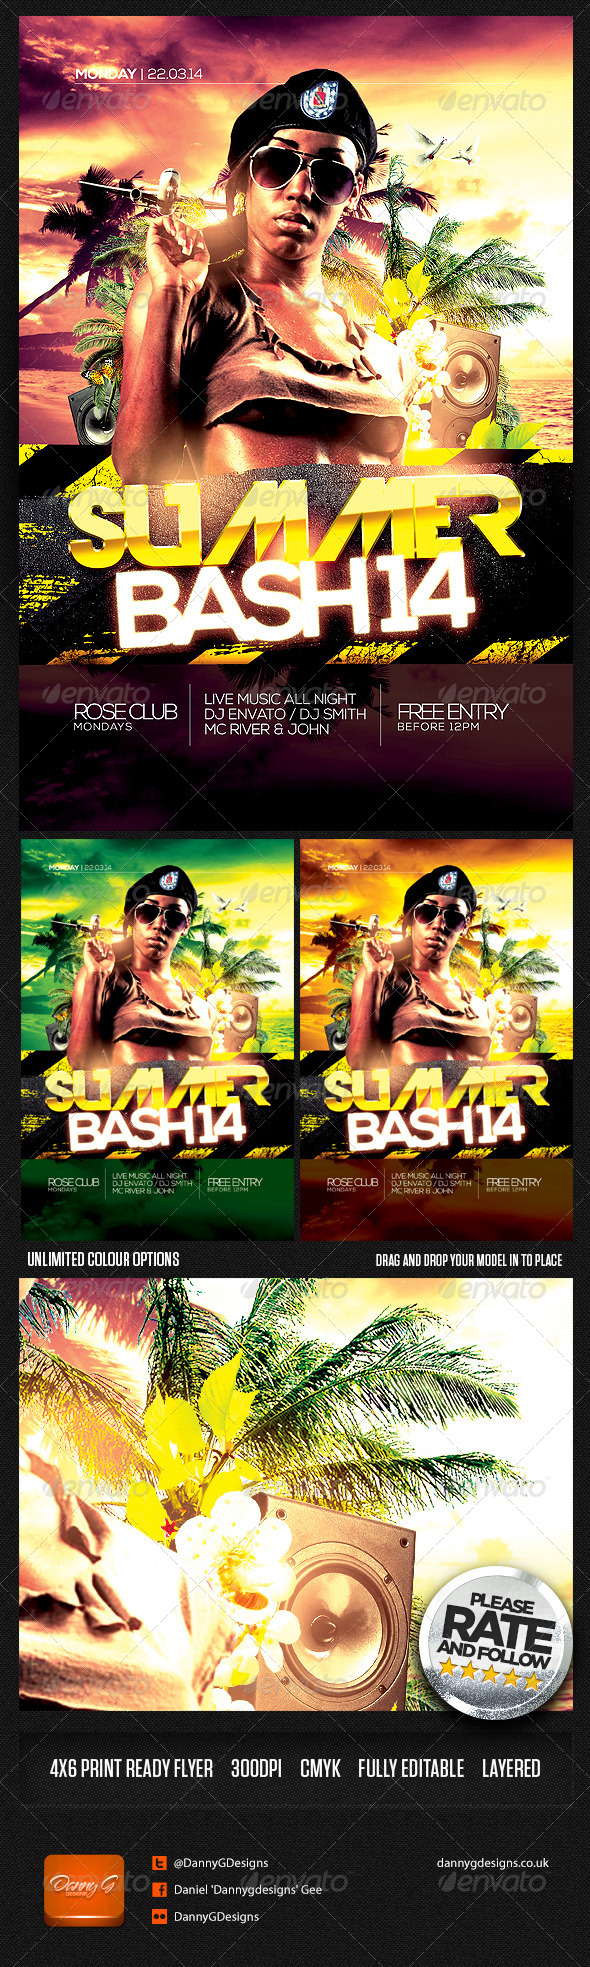 GraphicRiver Summer Bash 14 Flyer Template PSD 7195989